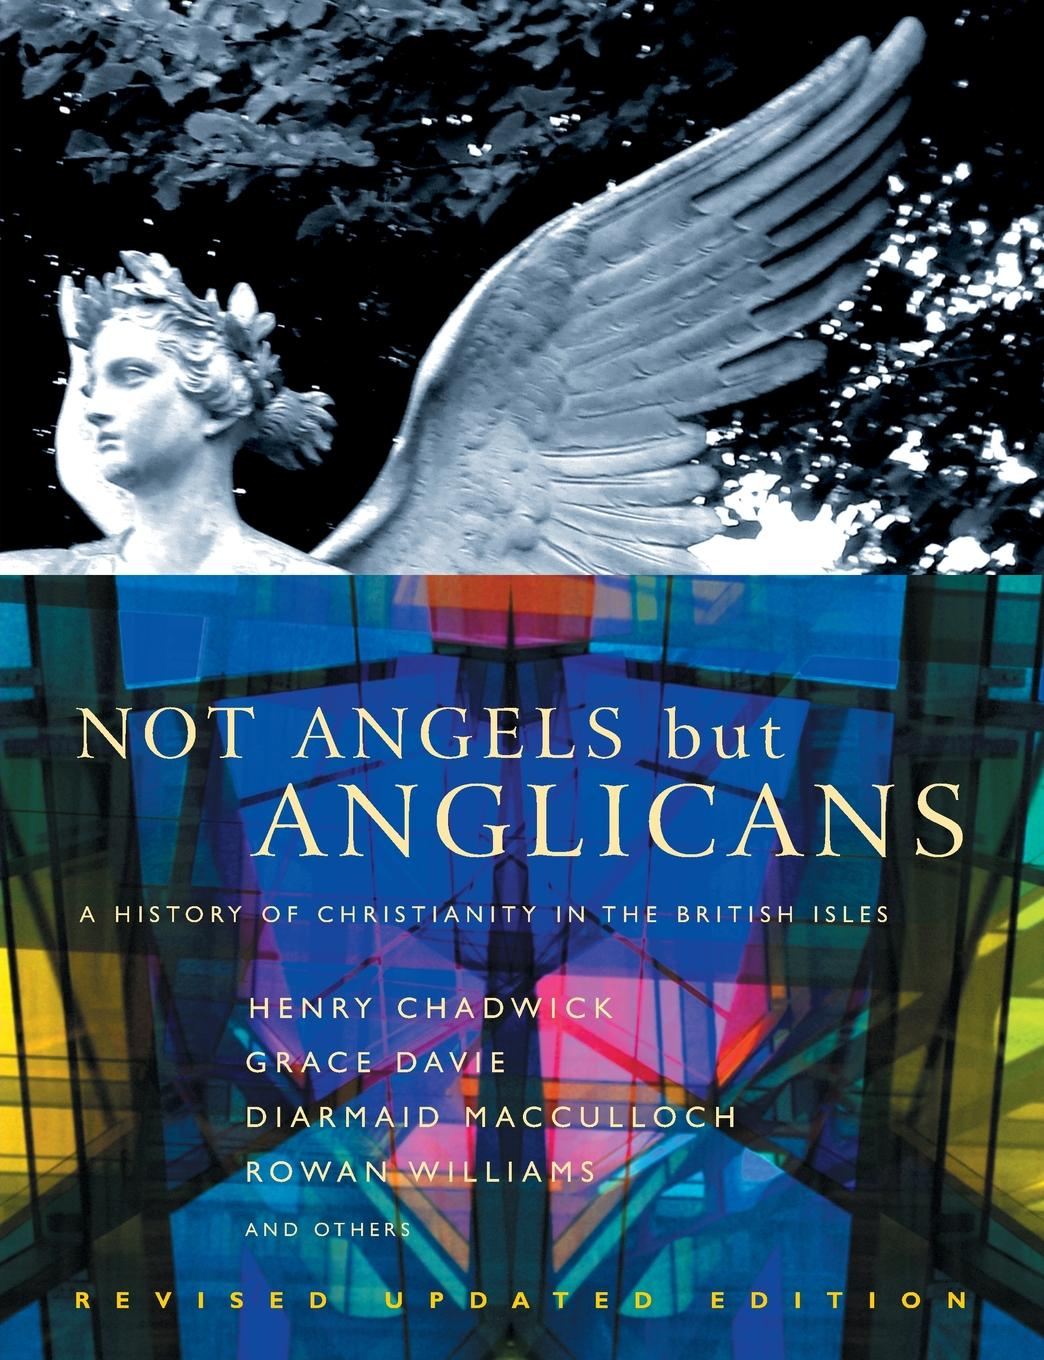 Not Angels But Anglicans. An Illustrated History of Christianity in the British Isles public pulpits methodists and mainline churches in the moral argument of public life